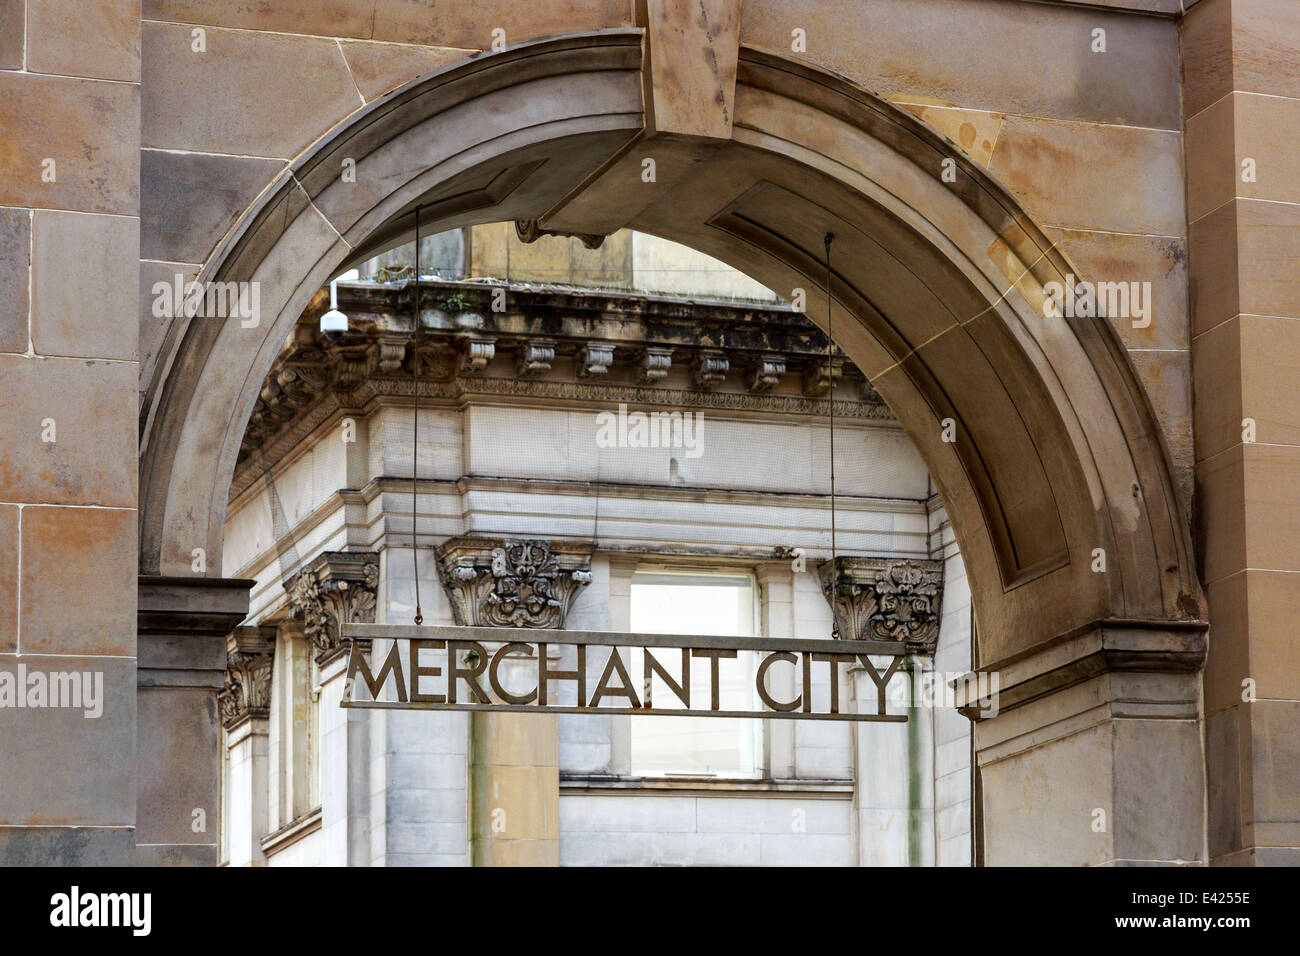 Arched entrance to Merchant City district of Glasgow city centre, Scotland, UK - Stock Image